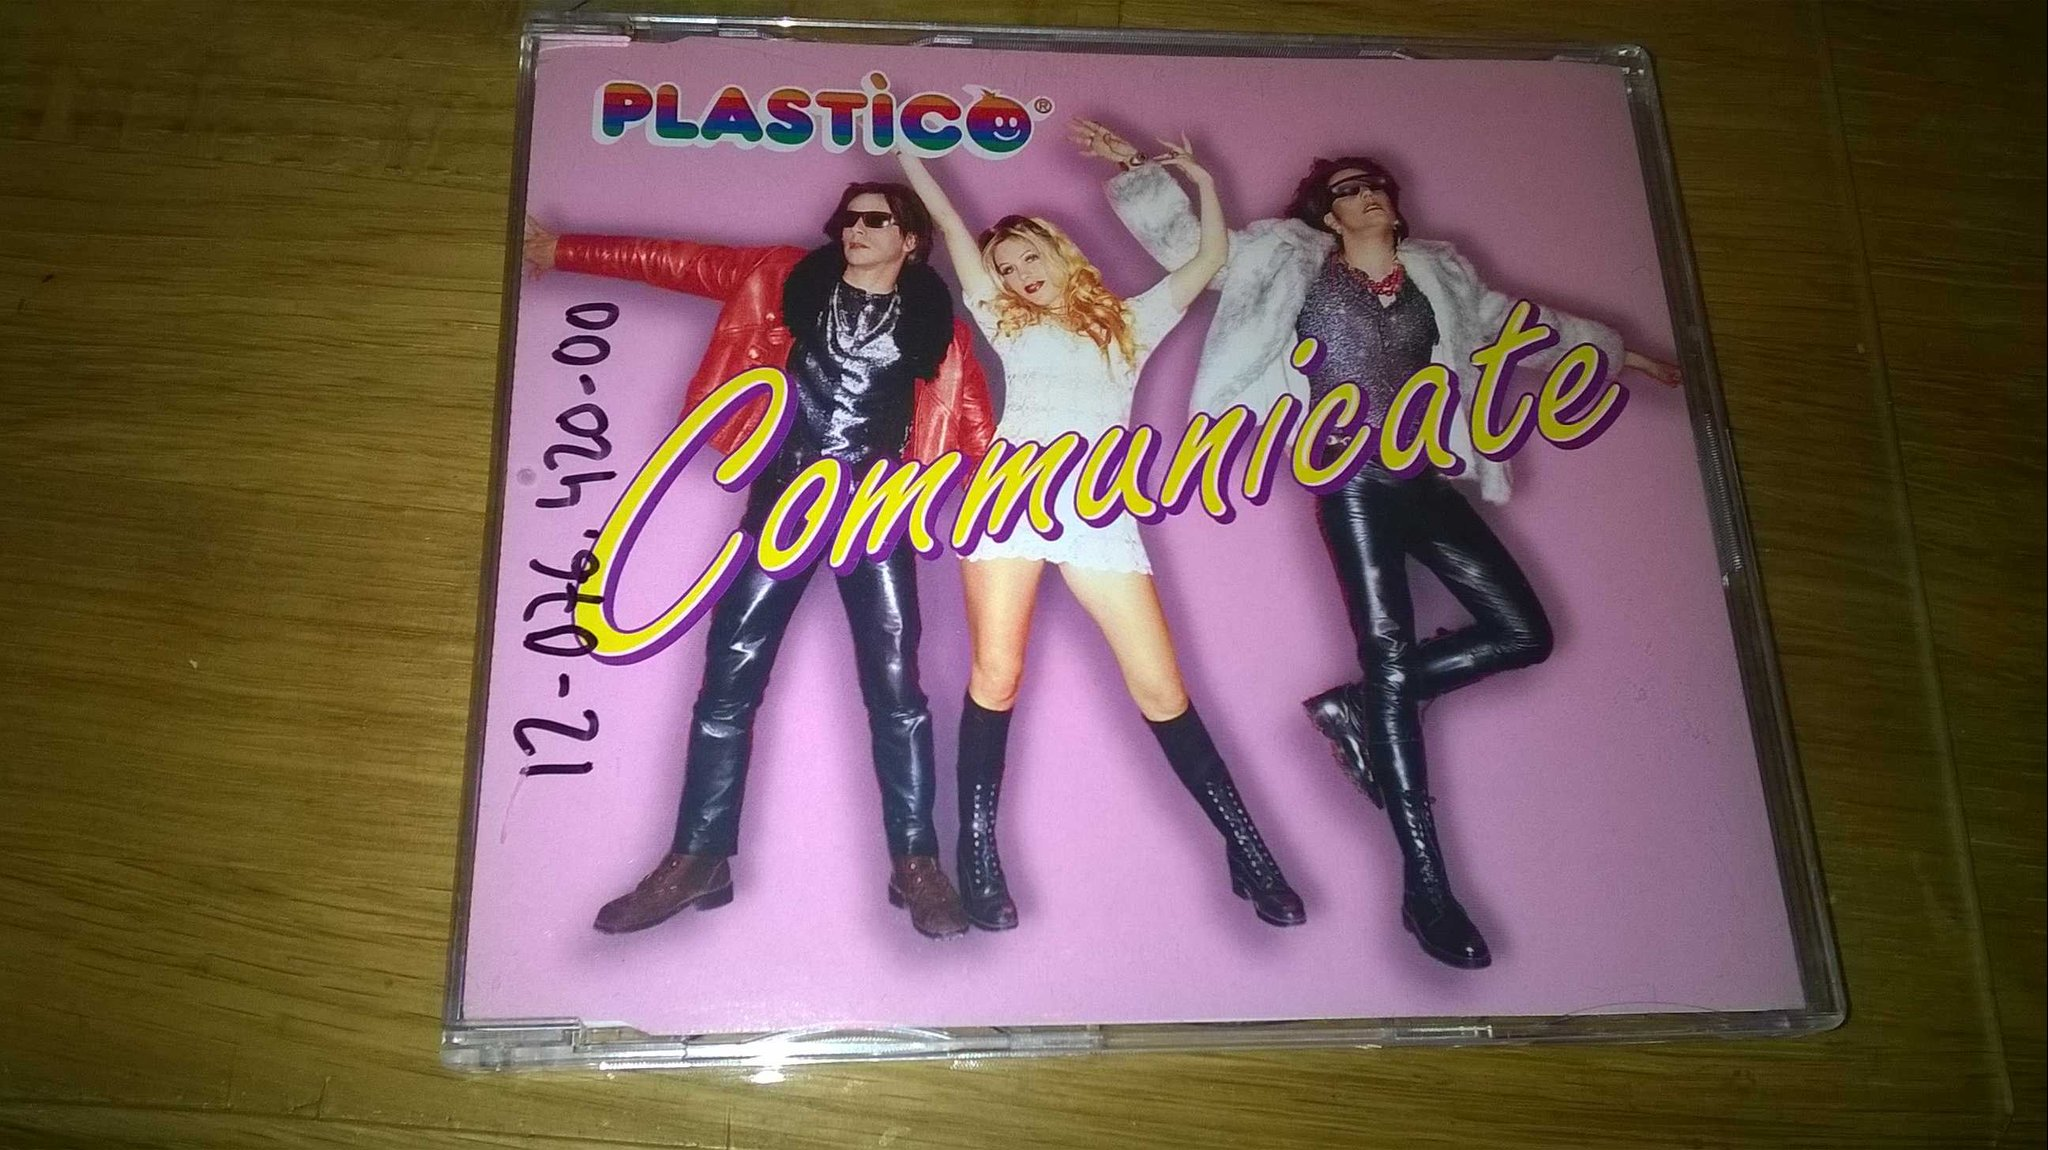 Plastico - Communicate, CD, Maxi-Single